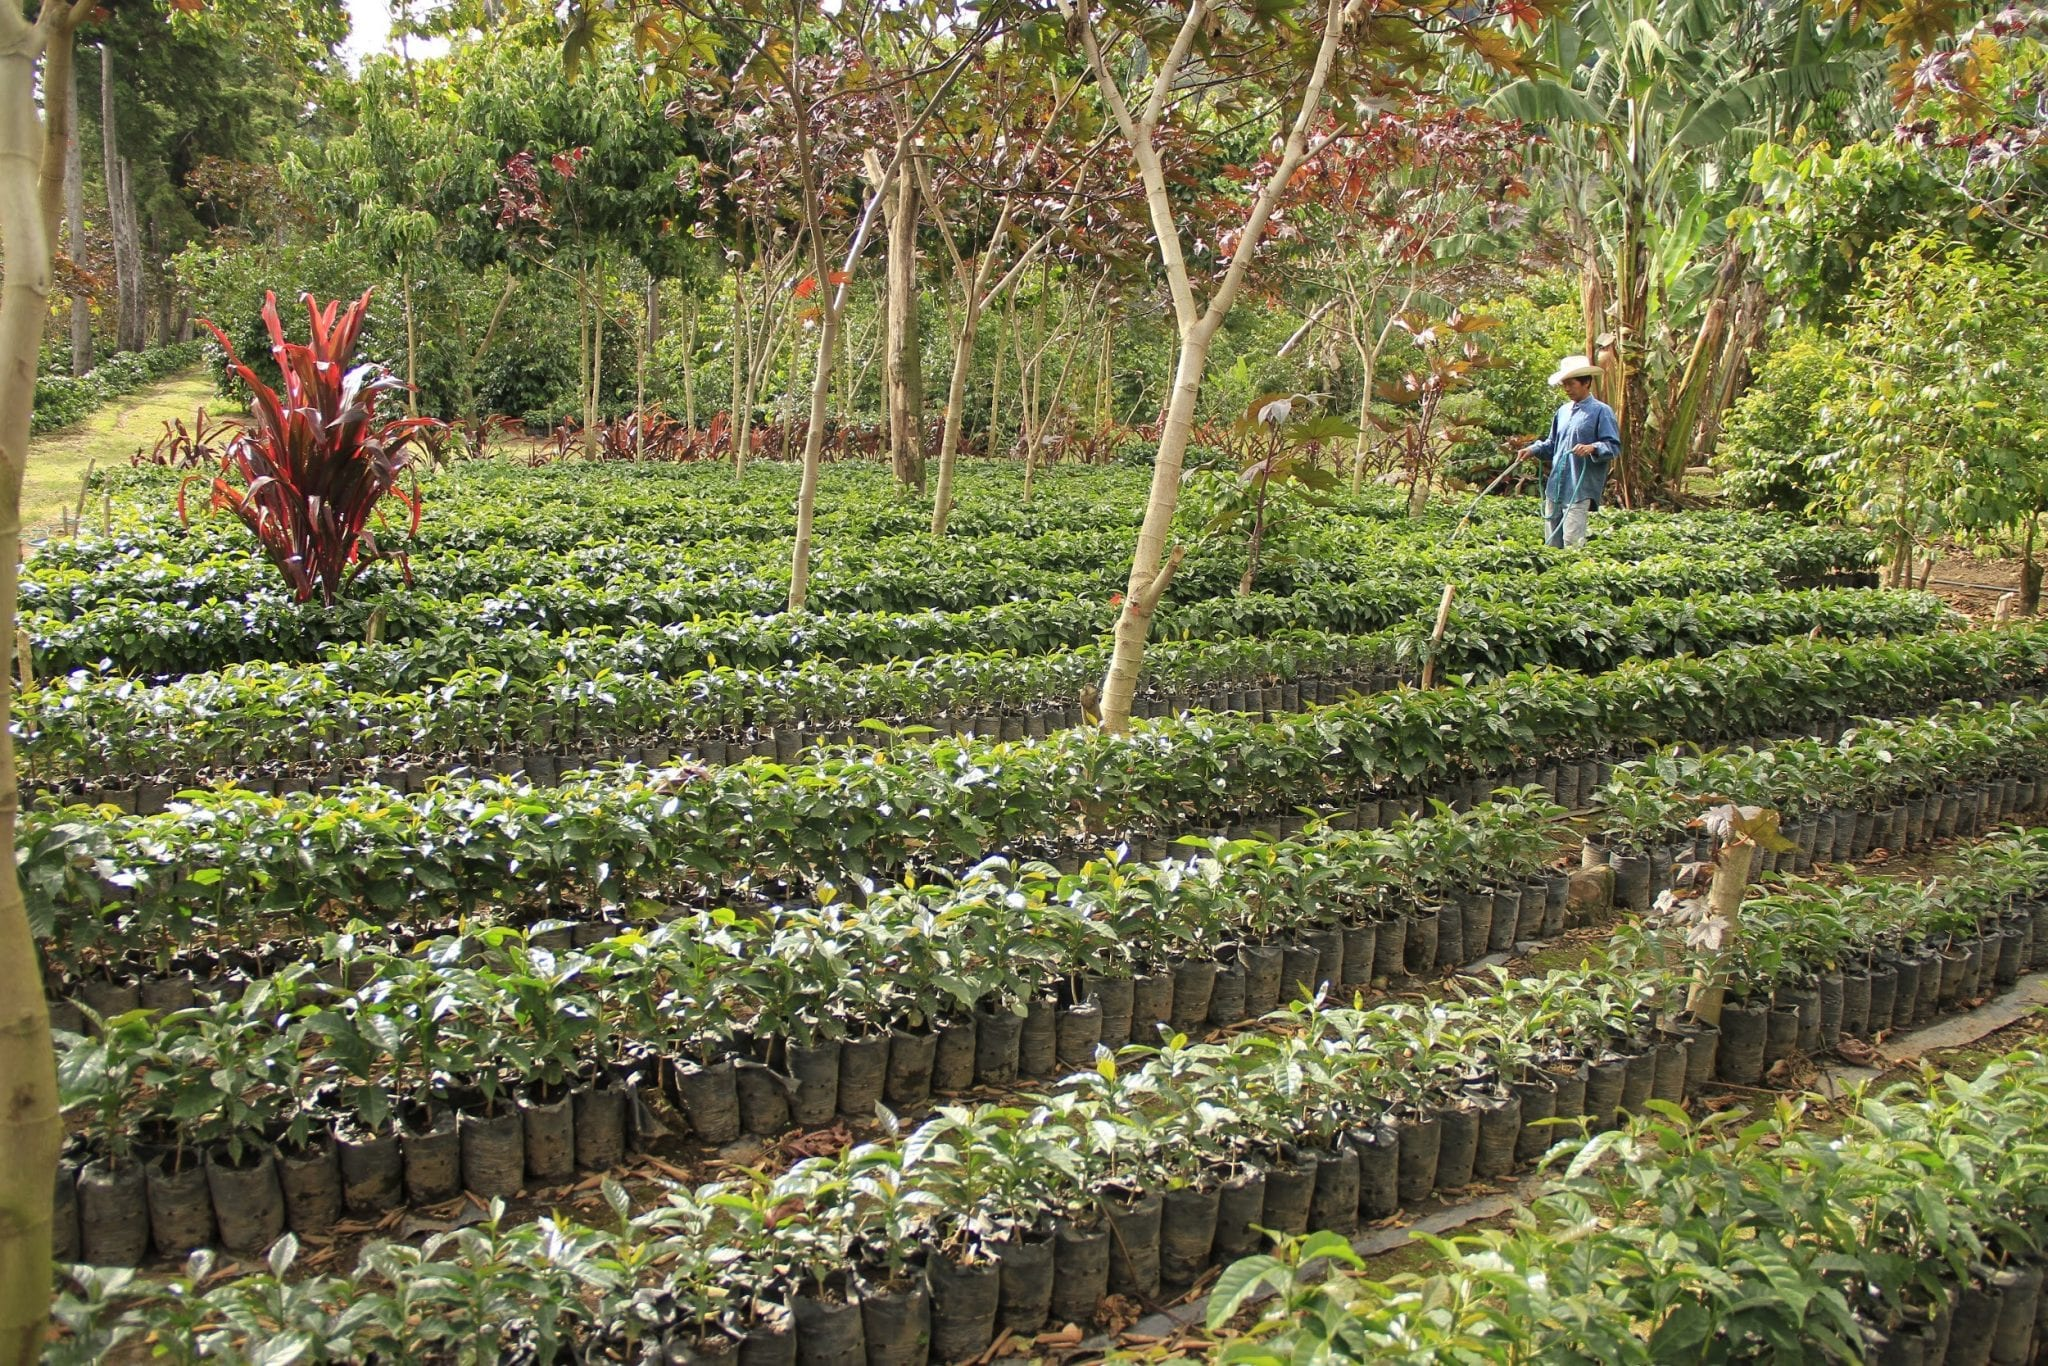 Coffee plants in a farm, ready to be replanted.